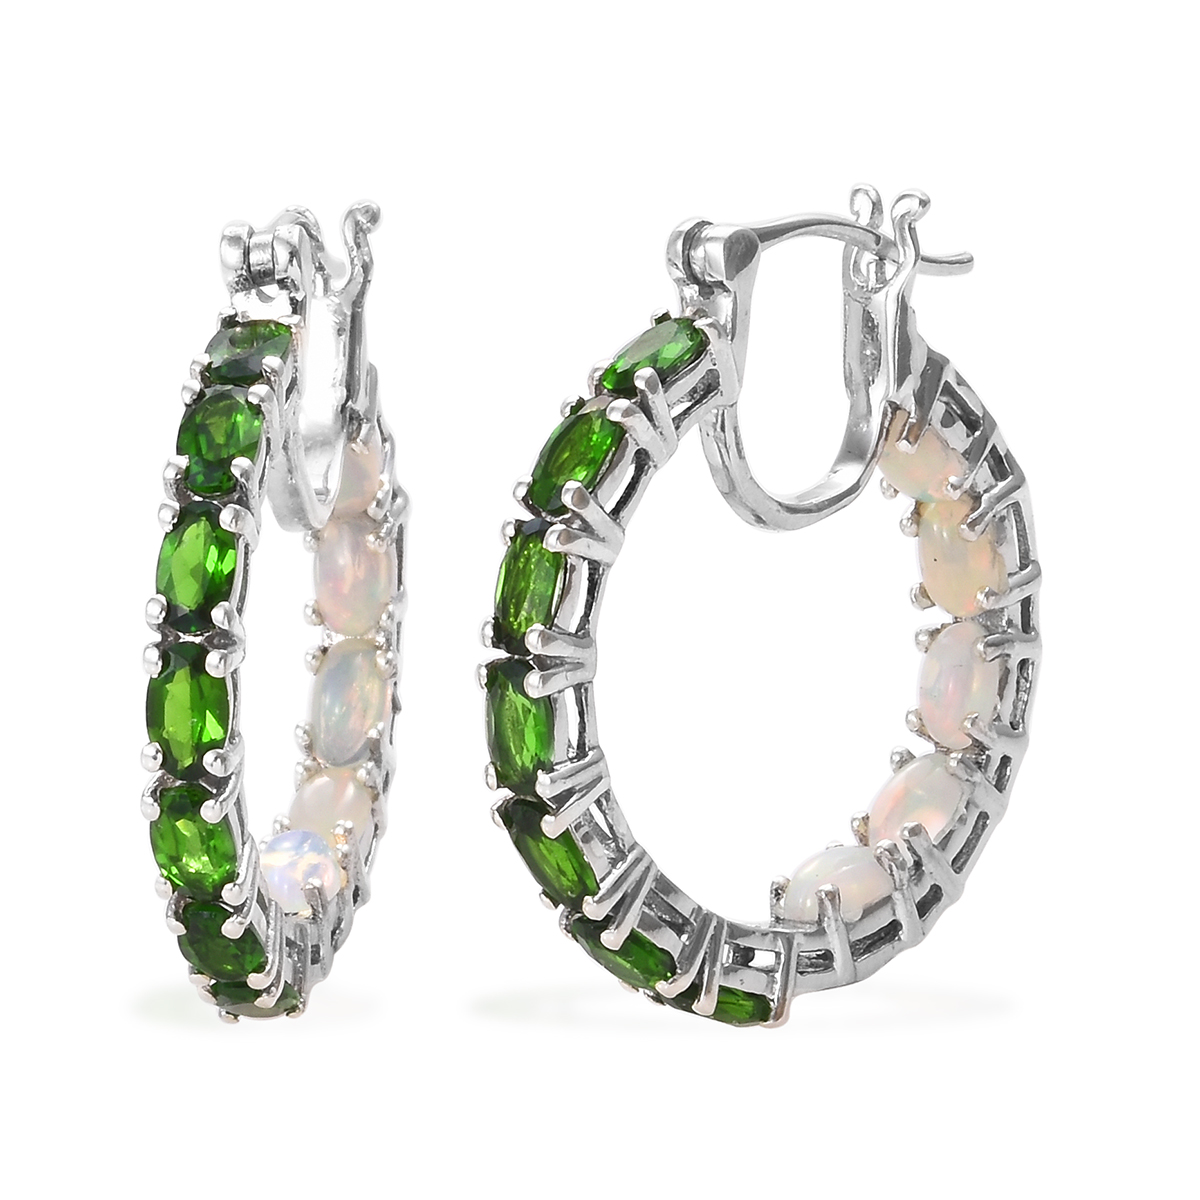 5143a8300f162 Russian Diopside, Ethiopian Welo Opal Inside Out Hoop Earrings in Platinum  Over Sterling Silver 4.90 ctw